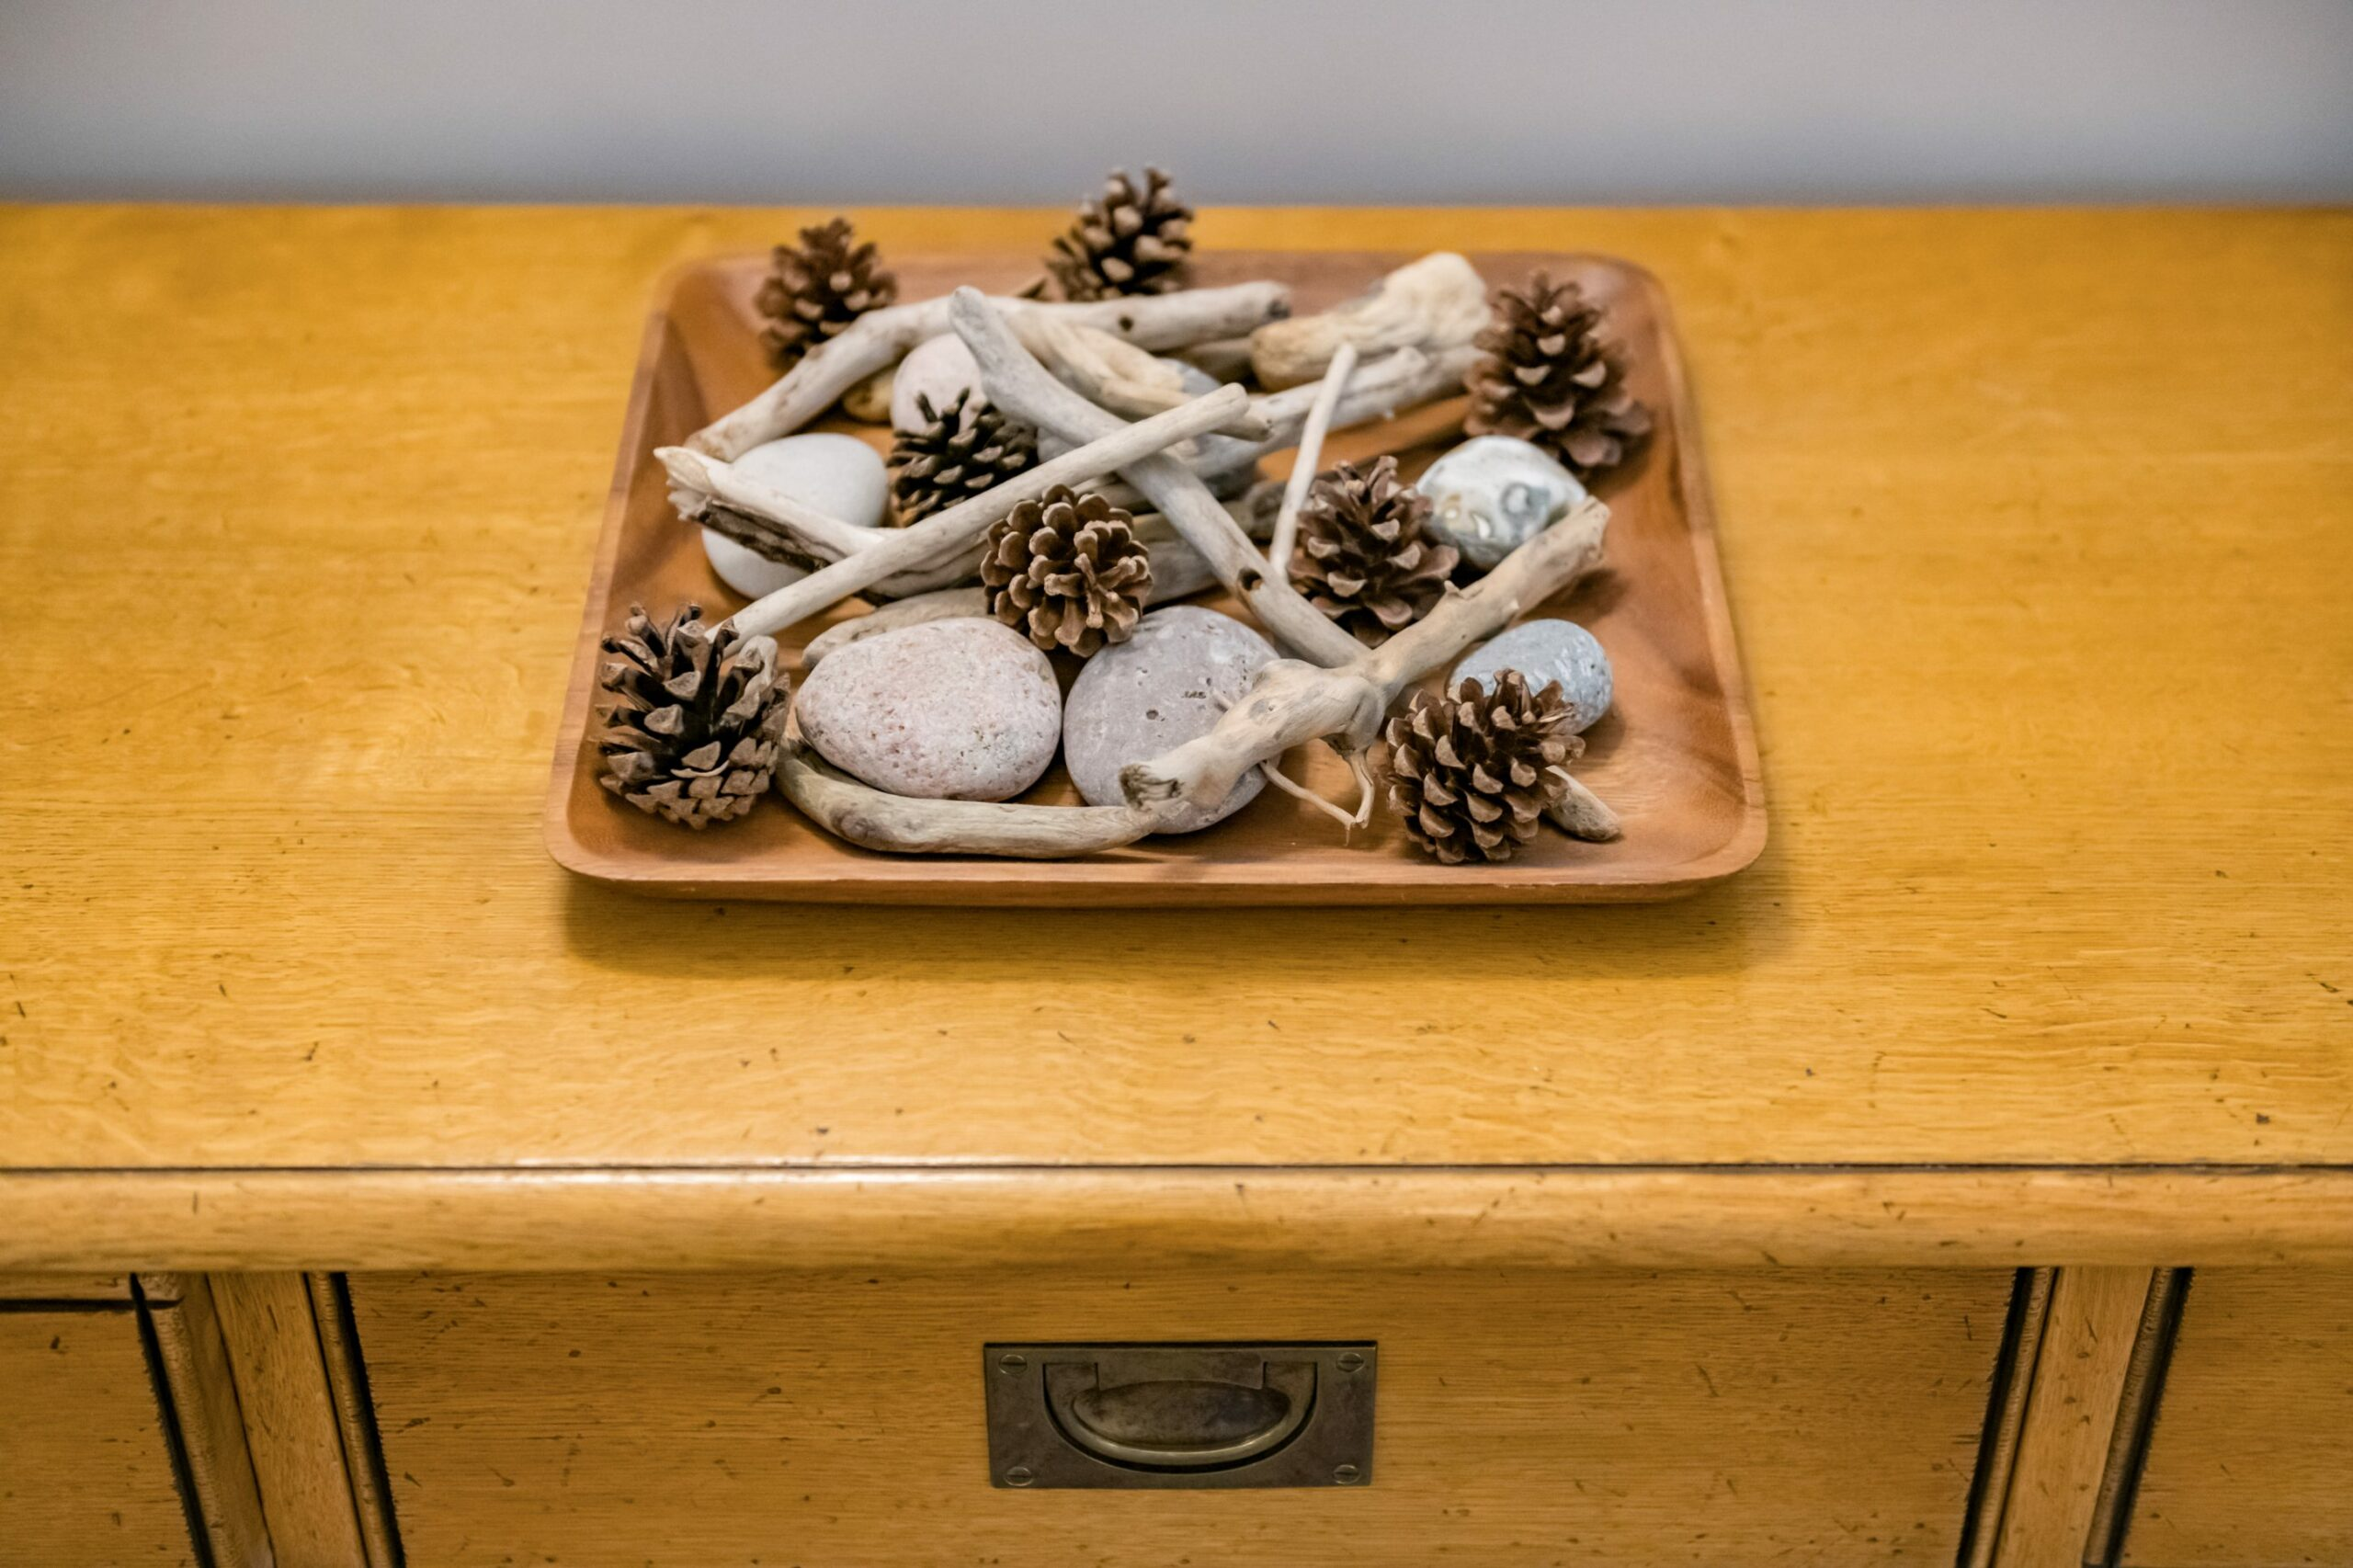 Cabinet with pine cones and sticks on